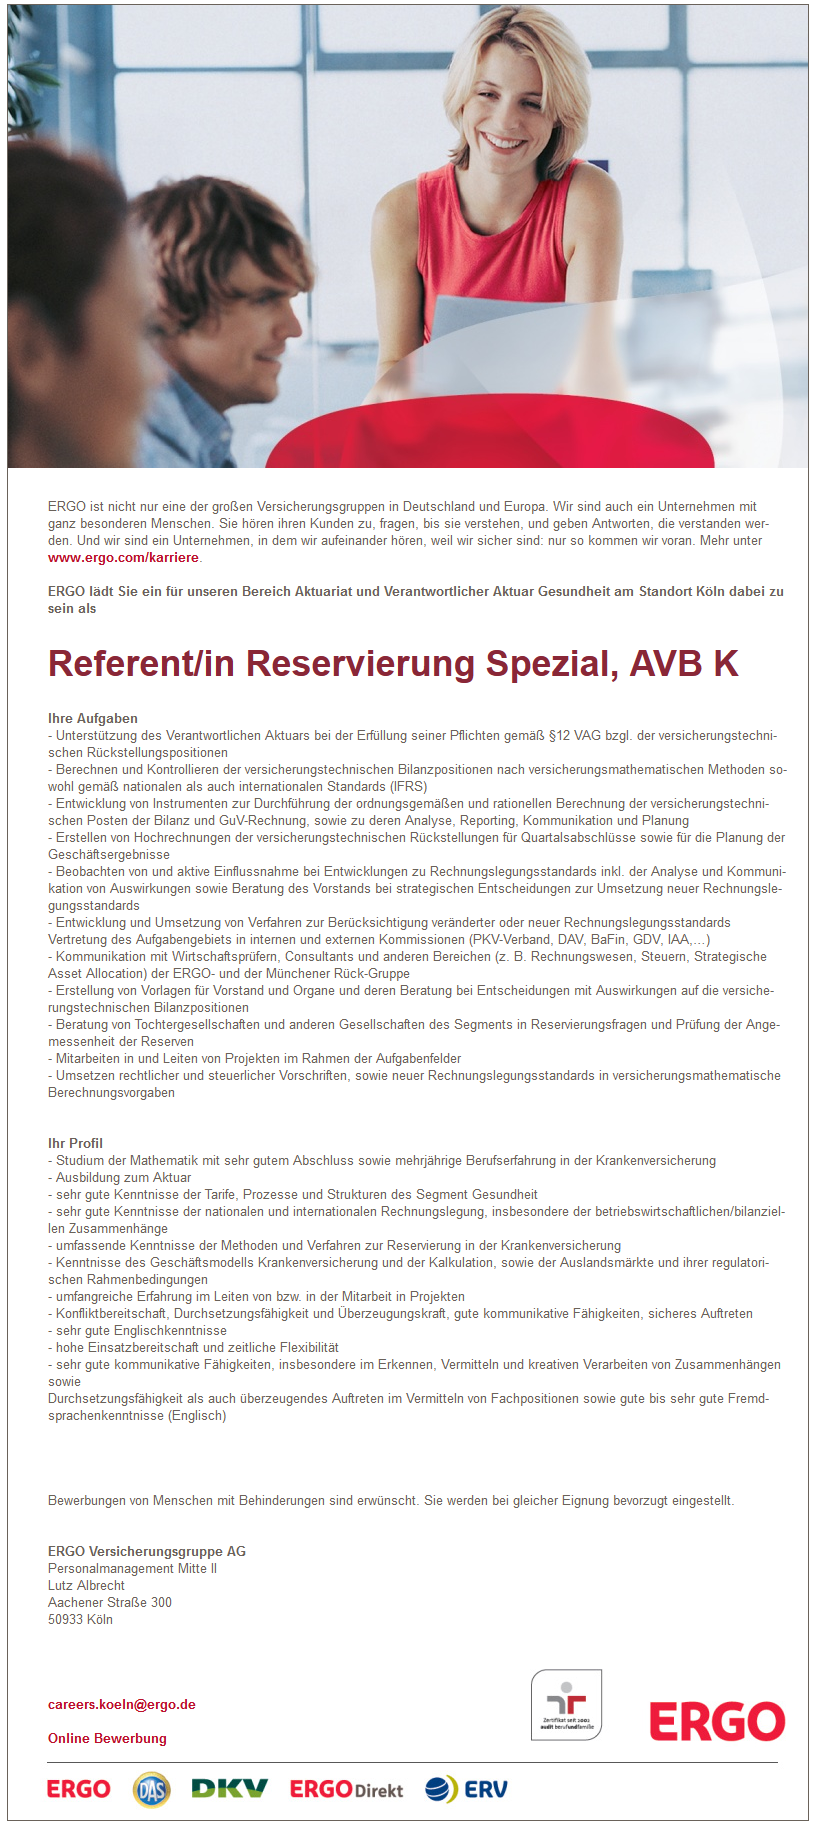 Referent Reservierung Spezial AVB K - nee, is klar